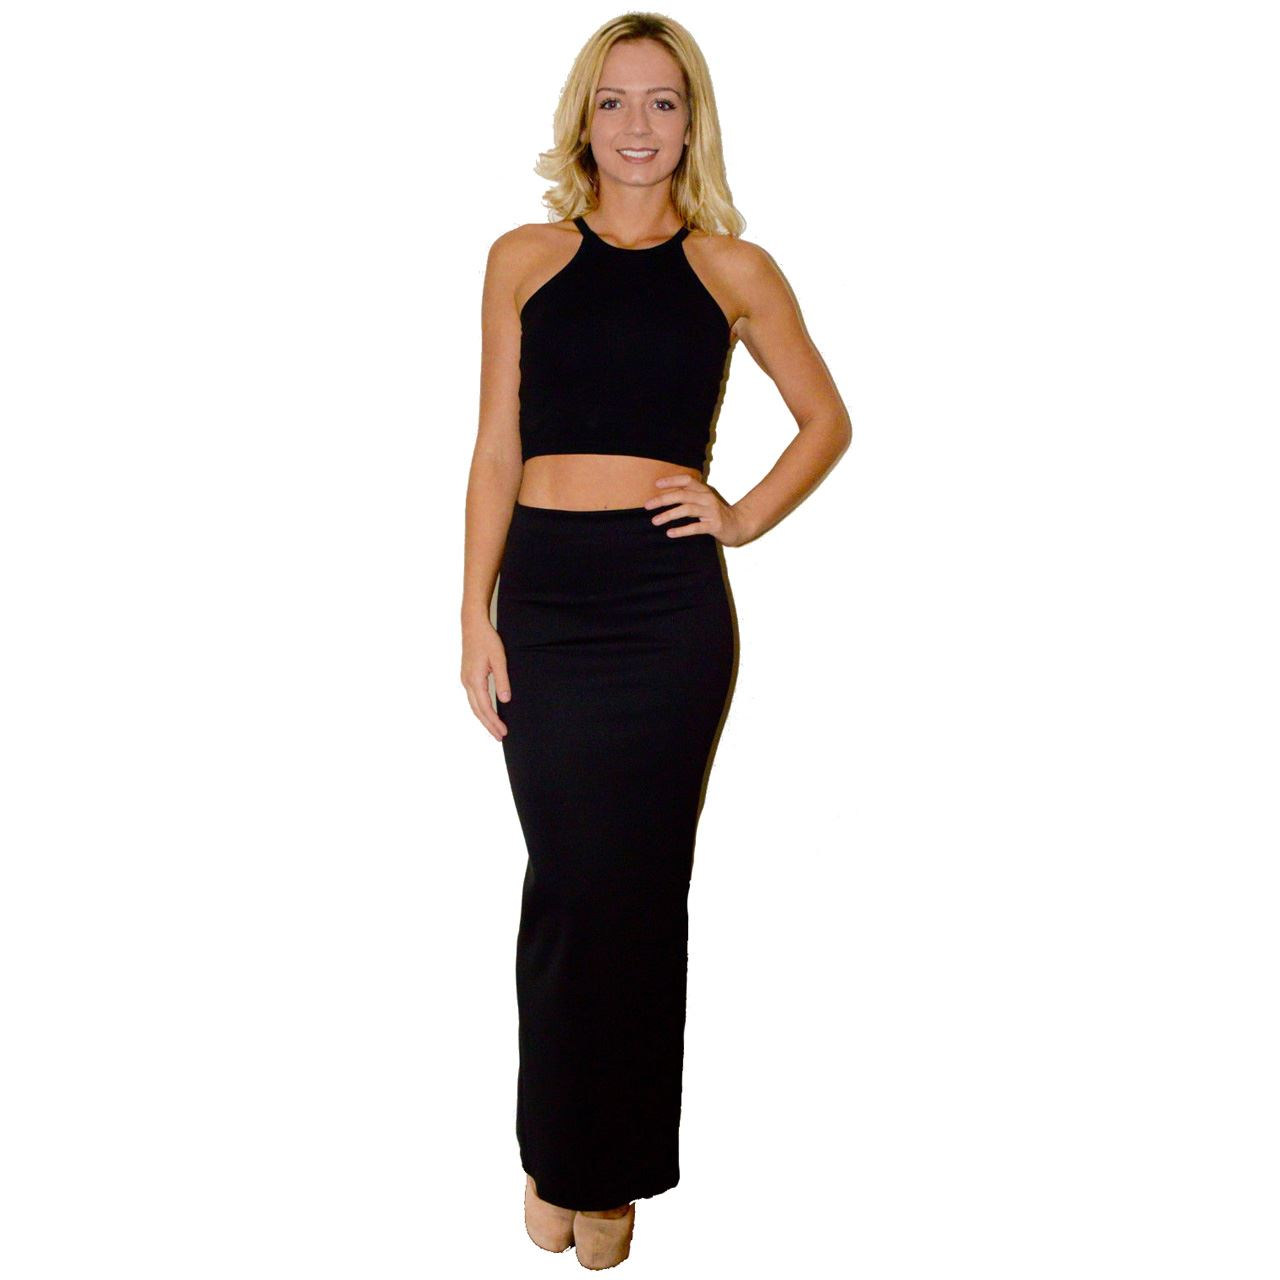 Cool Chic Pencil Skirts Womens Office Look High Waist Long Bodycon Skirt